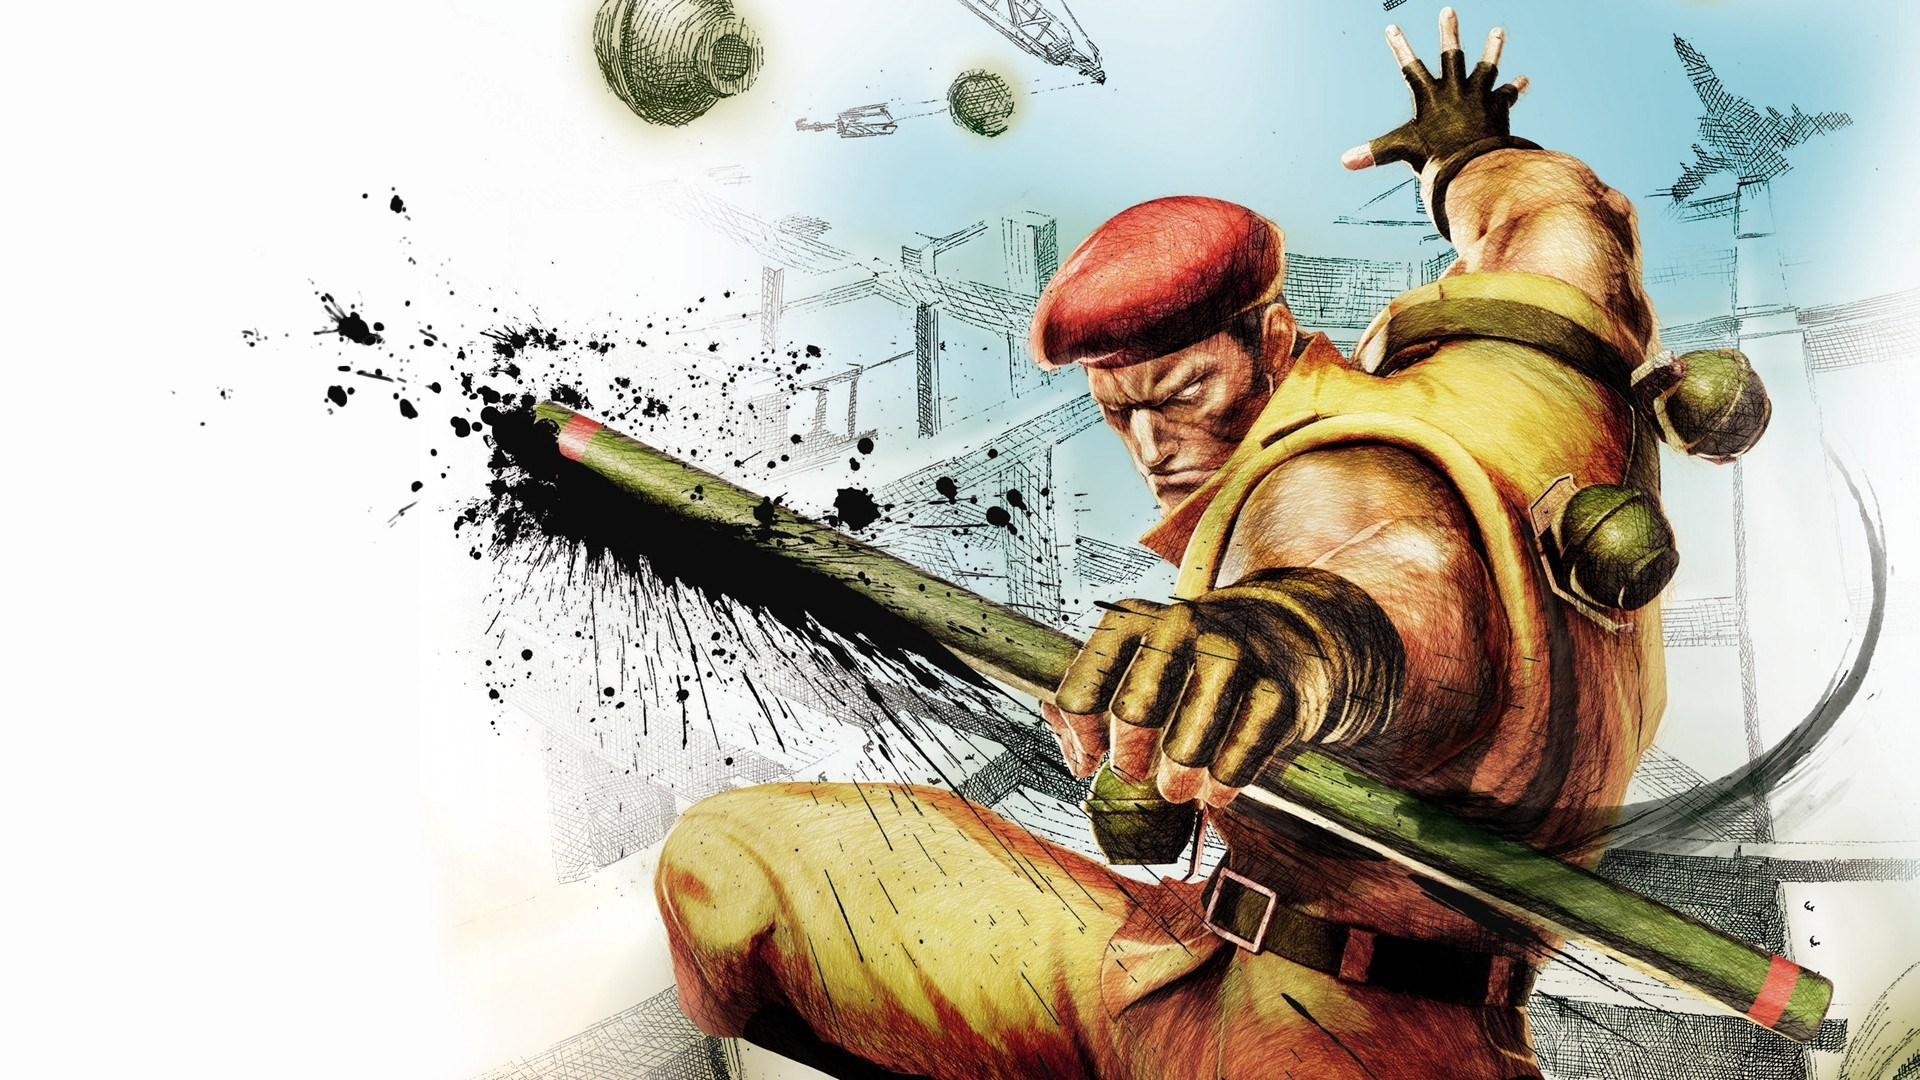 1920x1080-free-screensaver-for-ultra-street-fighter-iv-wallpaper-wpc580776